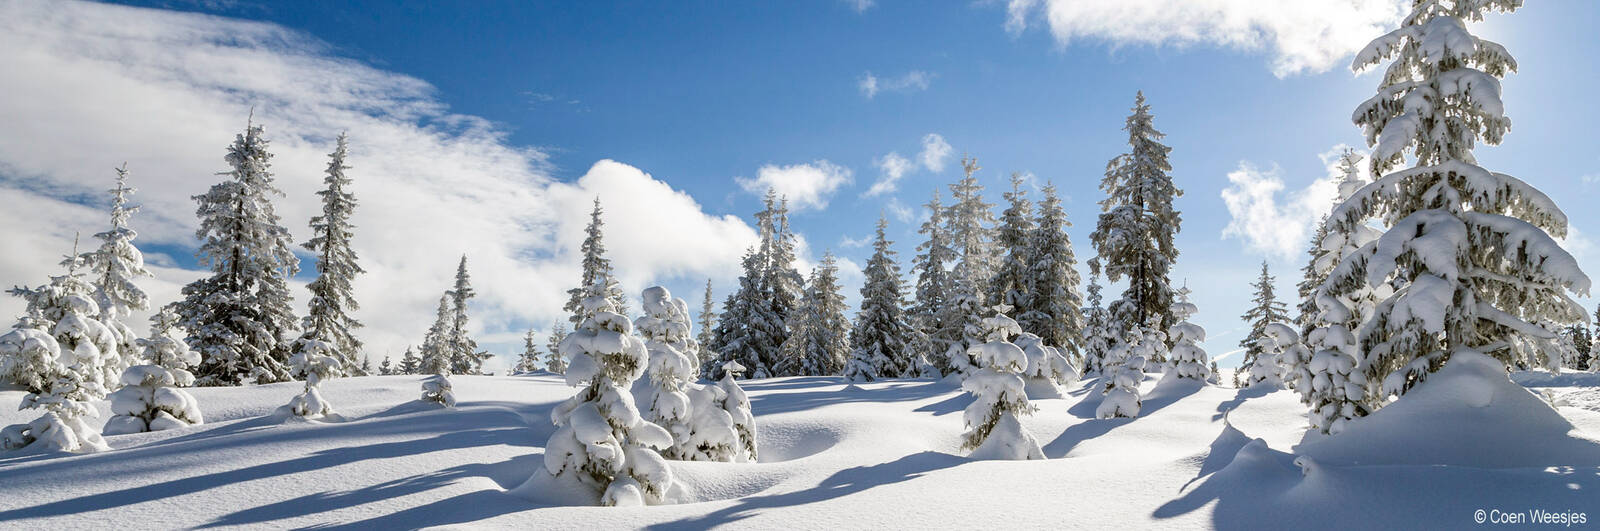 Winterurlaub in Premium Wanderhotels